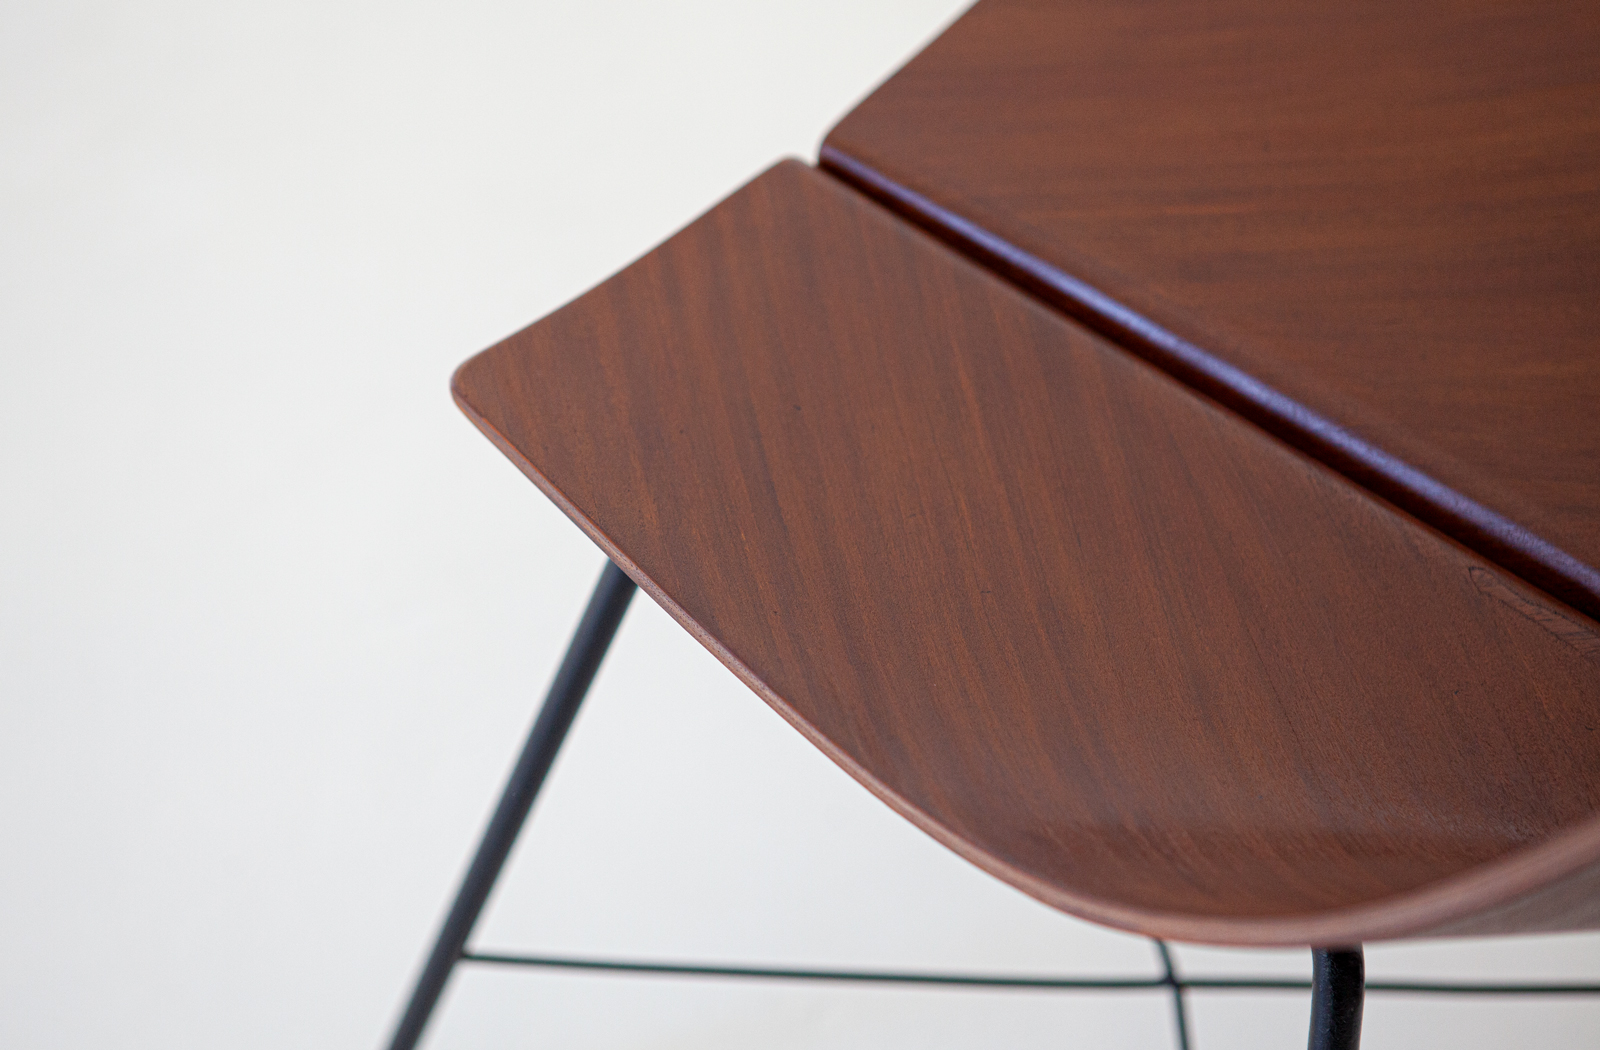 1950s-modern-curved-rosewood-chair-by-societa-compensati-curvati-5-se289